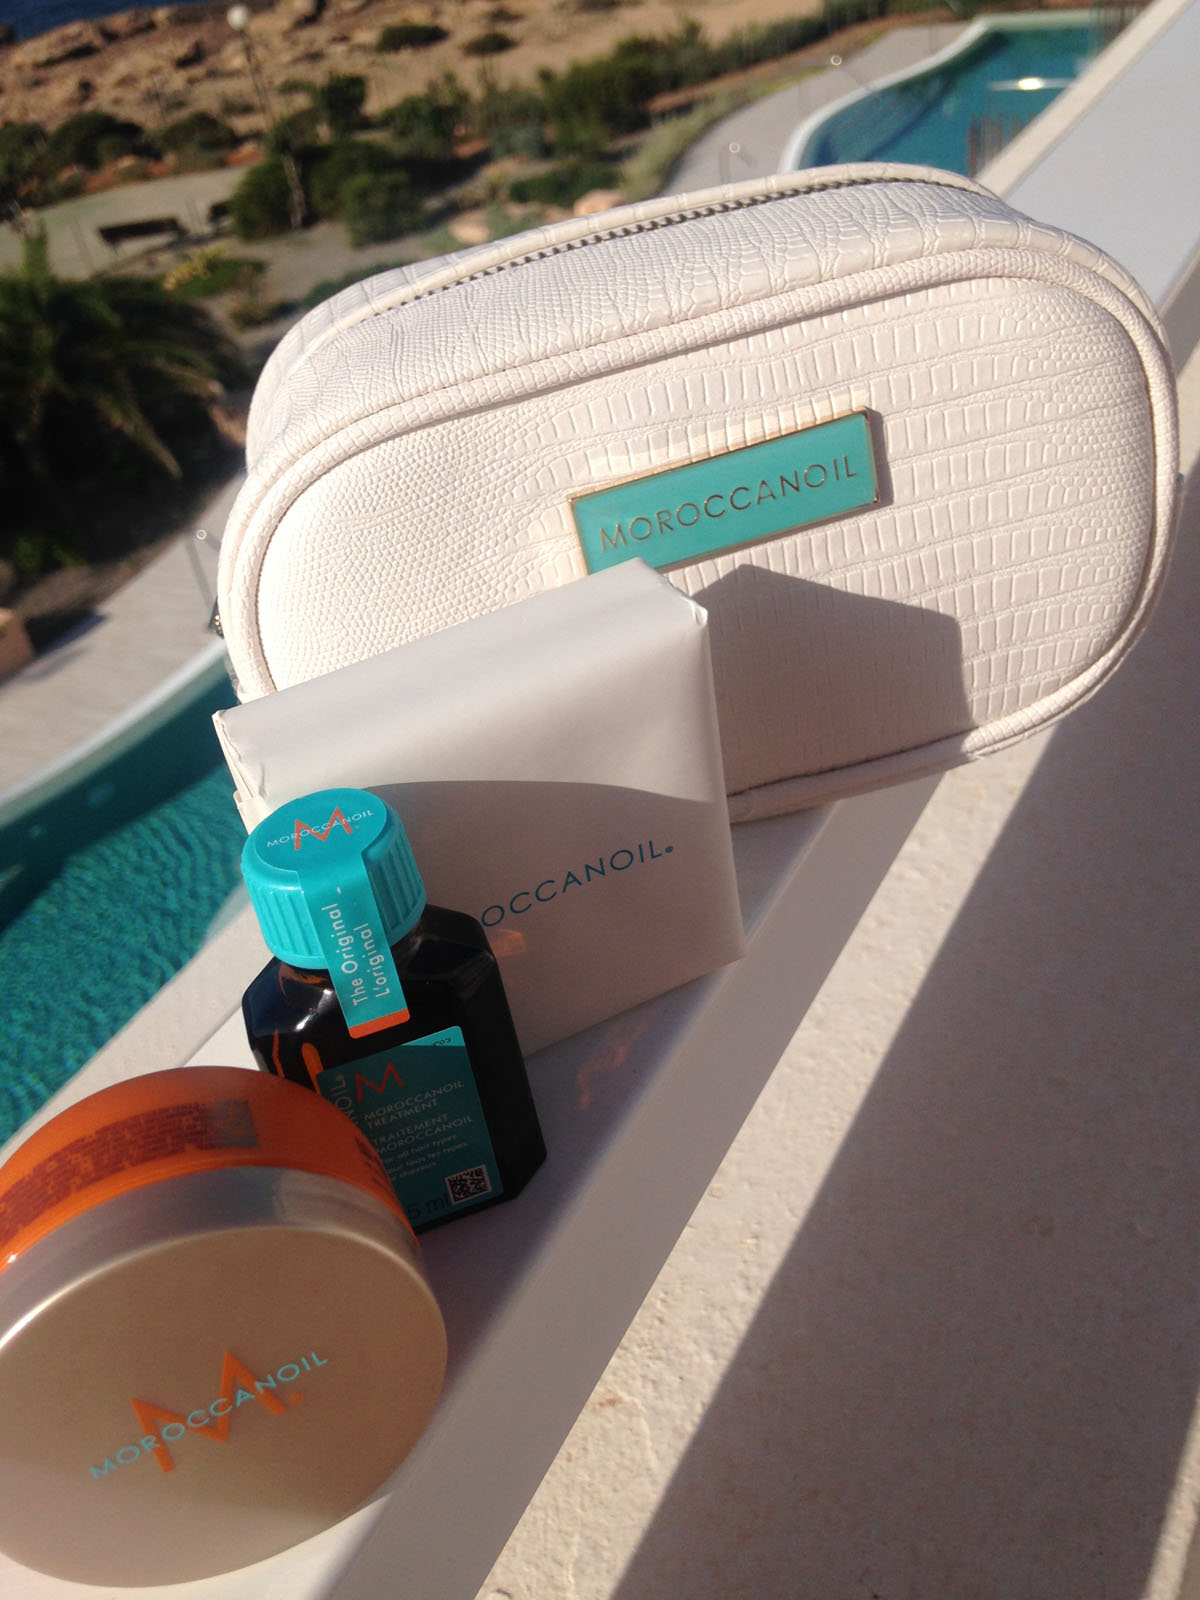 Moroccan Oil on balcony